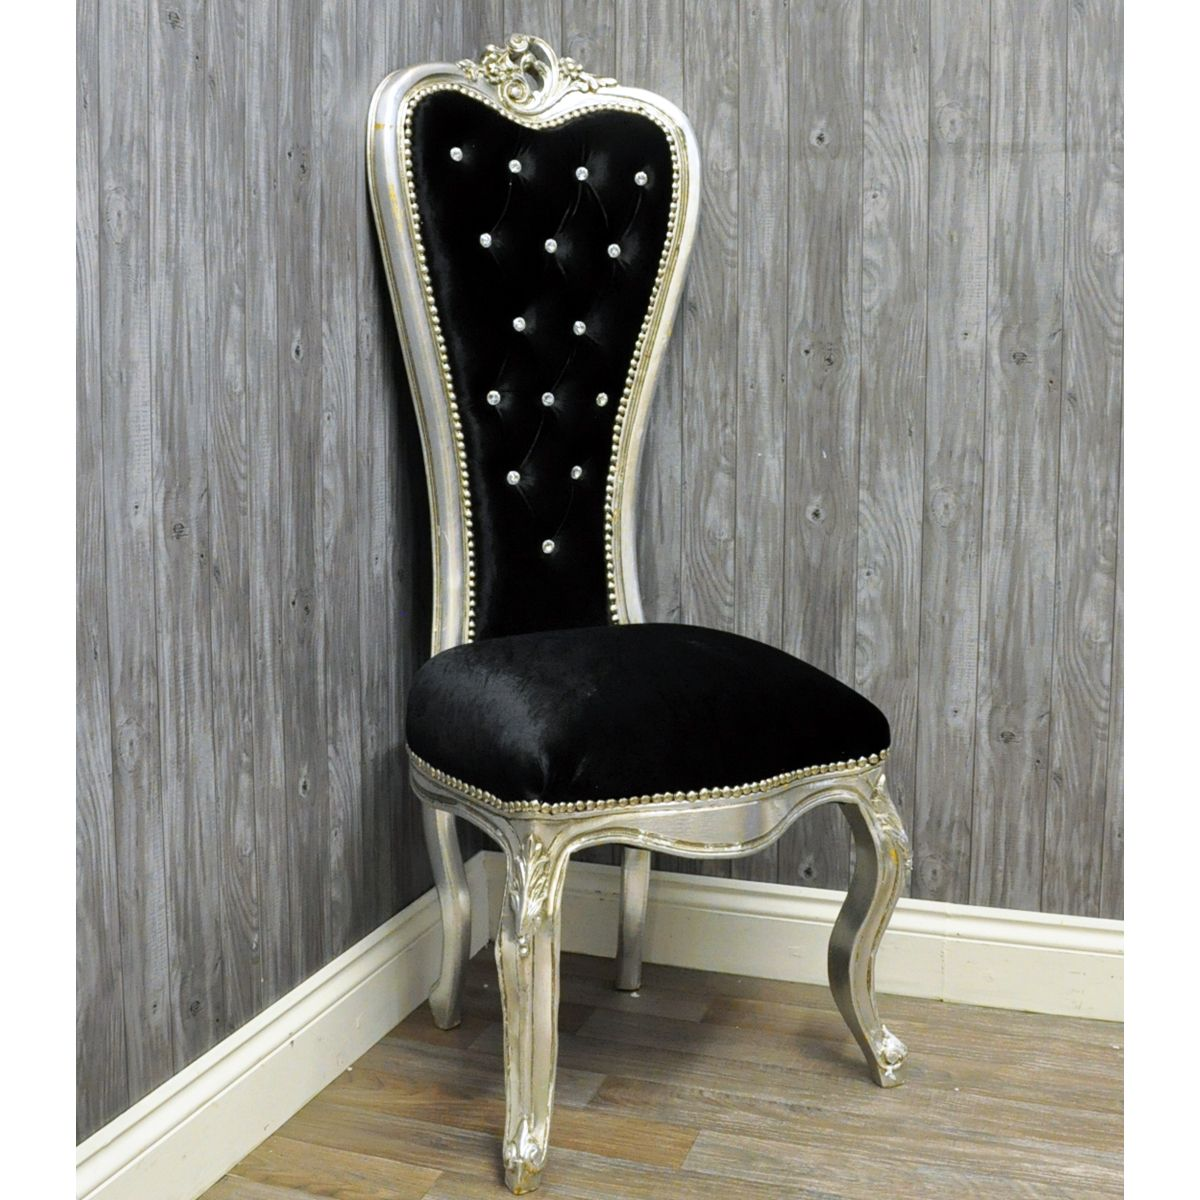 Chair Accessories For Weddings Wheel Chairs Sale Vintage Style Silver And Black Velvet Wedding Throne